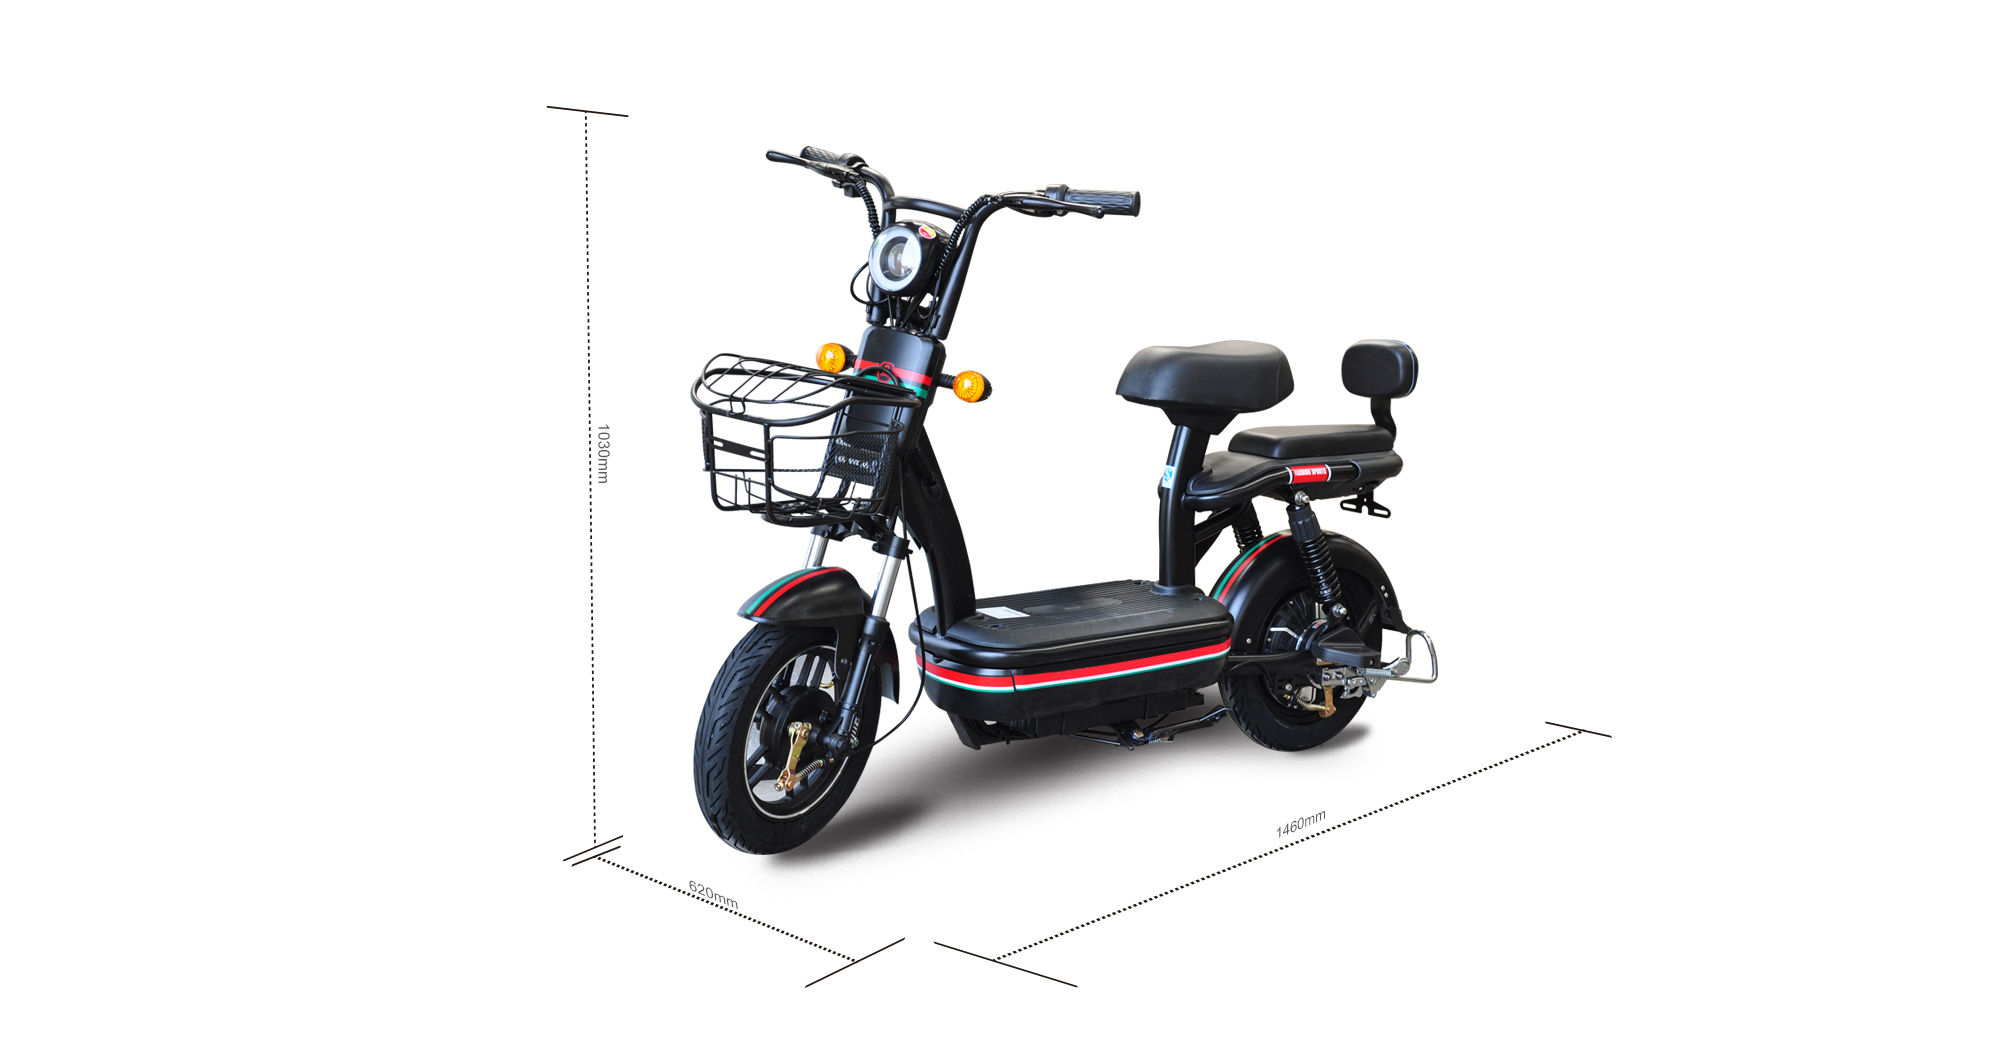 Bulk Two Wheels City Road Electric Motorcycle For Adults